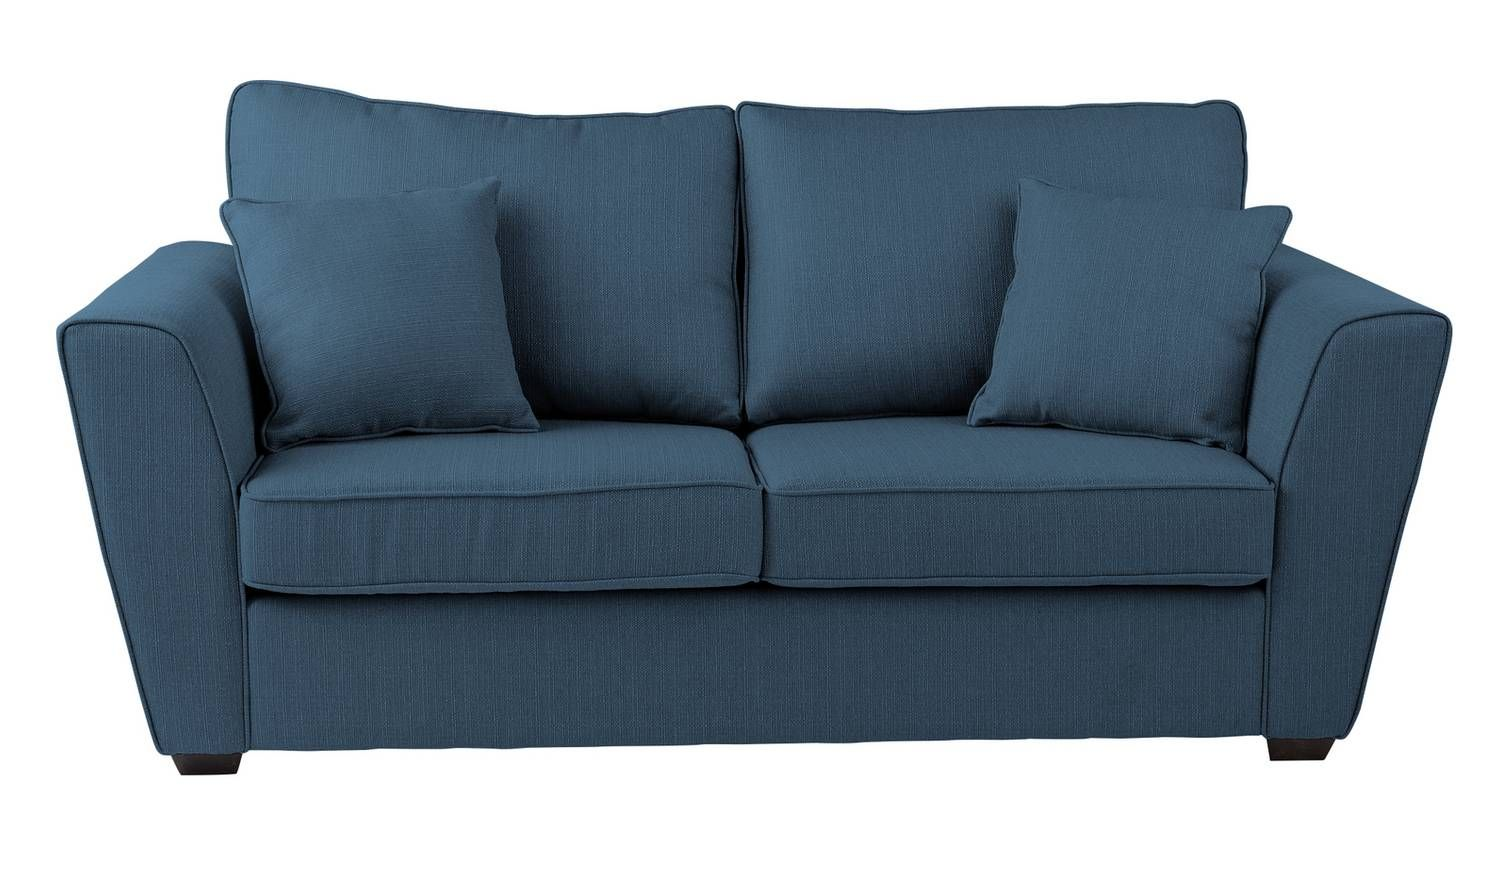 Stupendous Home Renley 2 Seater Fabric Sofa Bed Blue I House In Machost Co Dining Chair Design Ideas Machostcouk